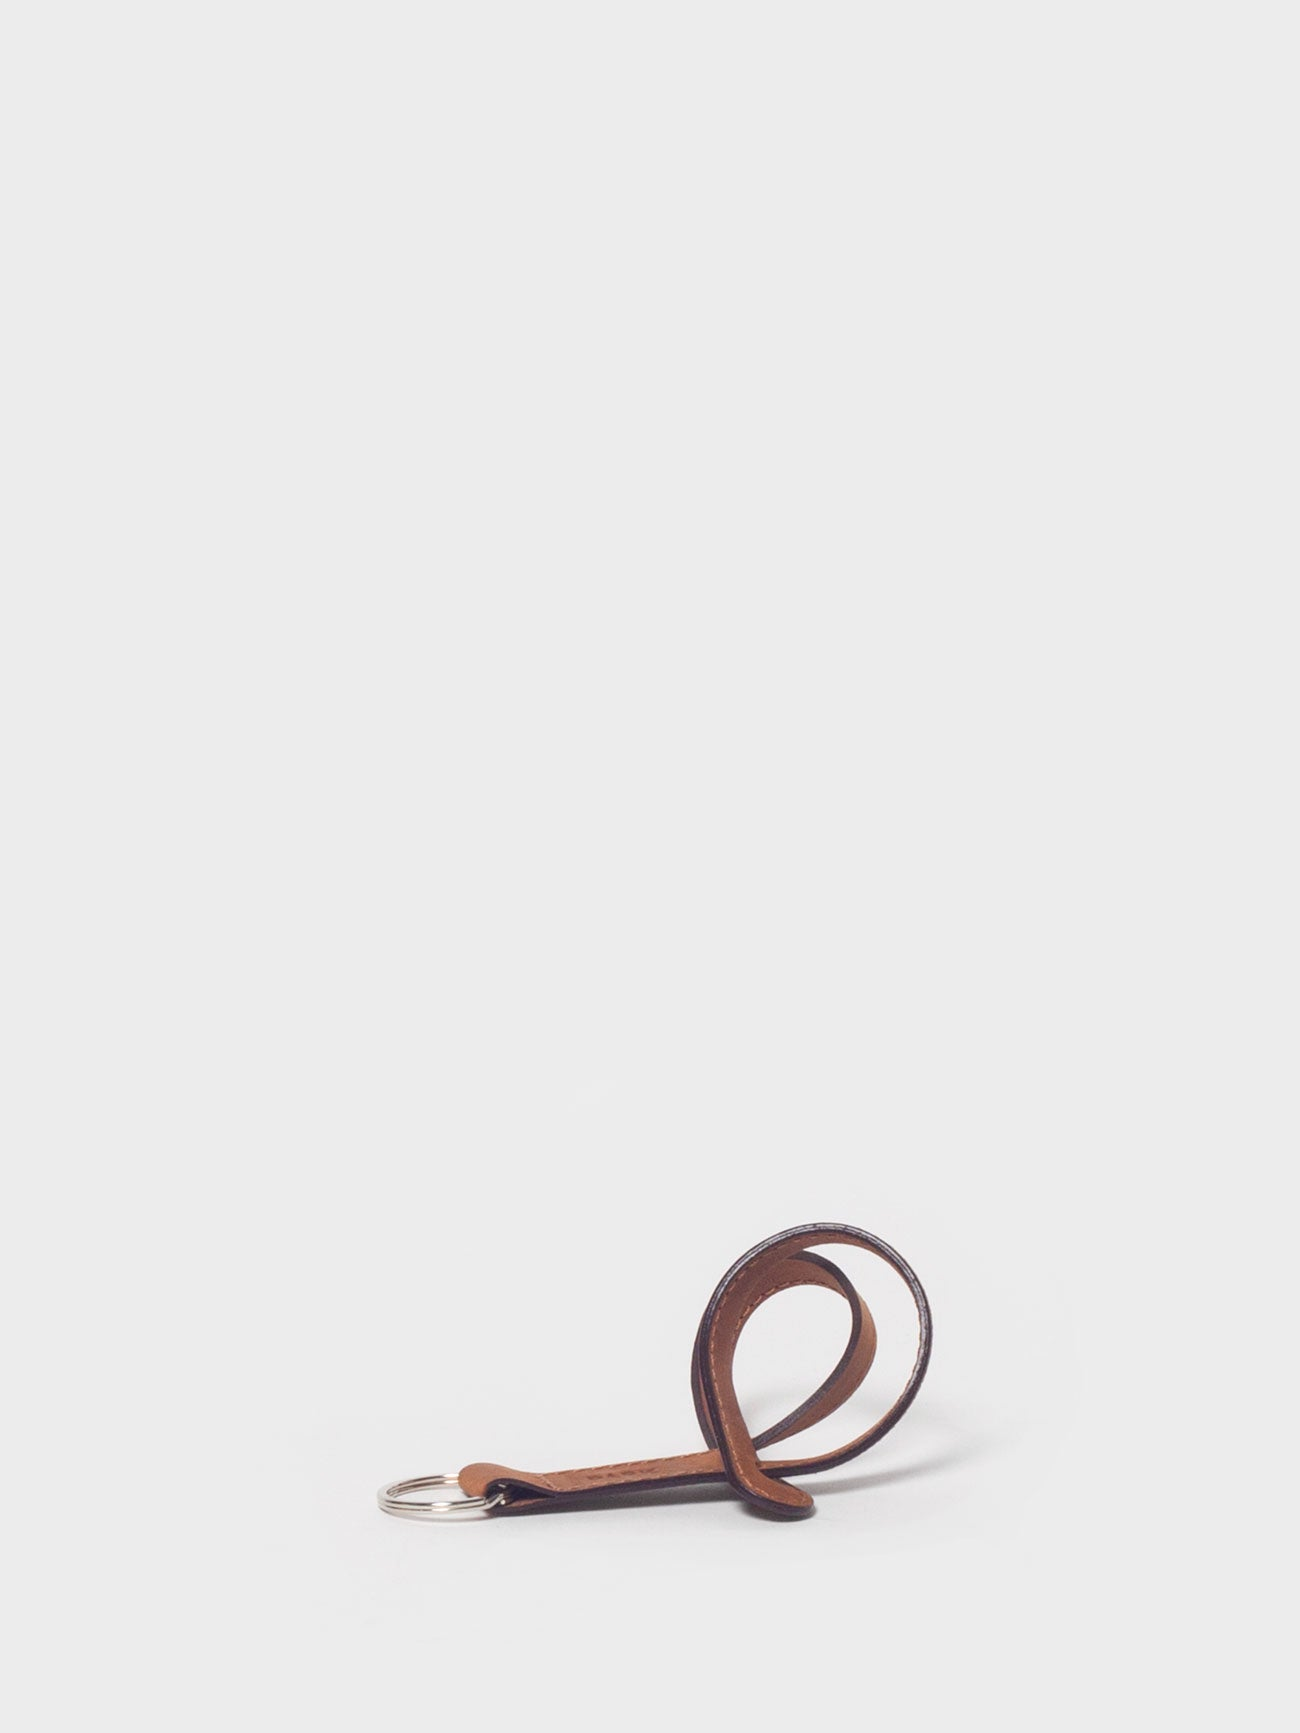 PARK Keychain KH01 Brown